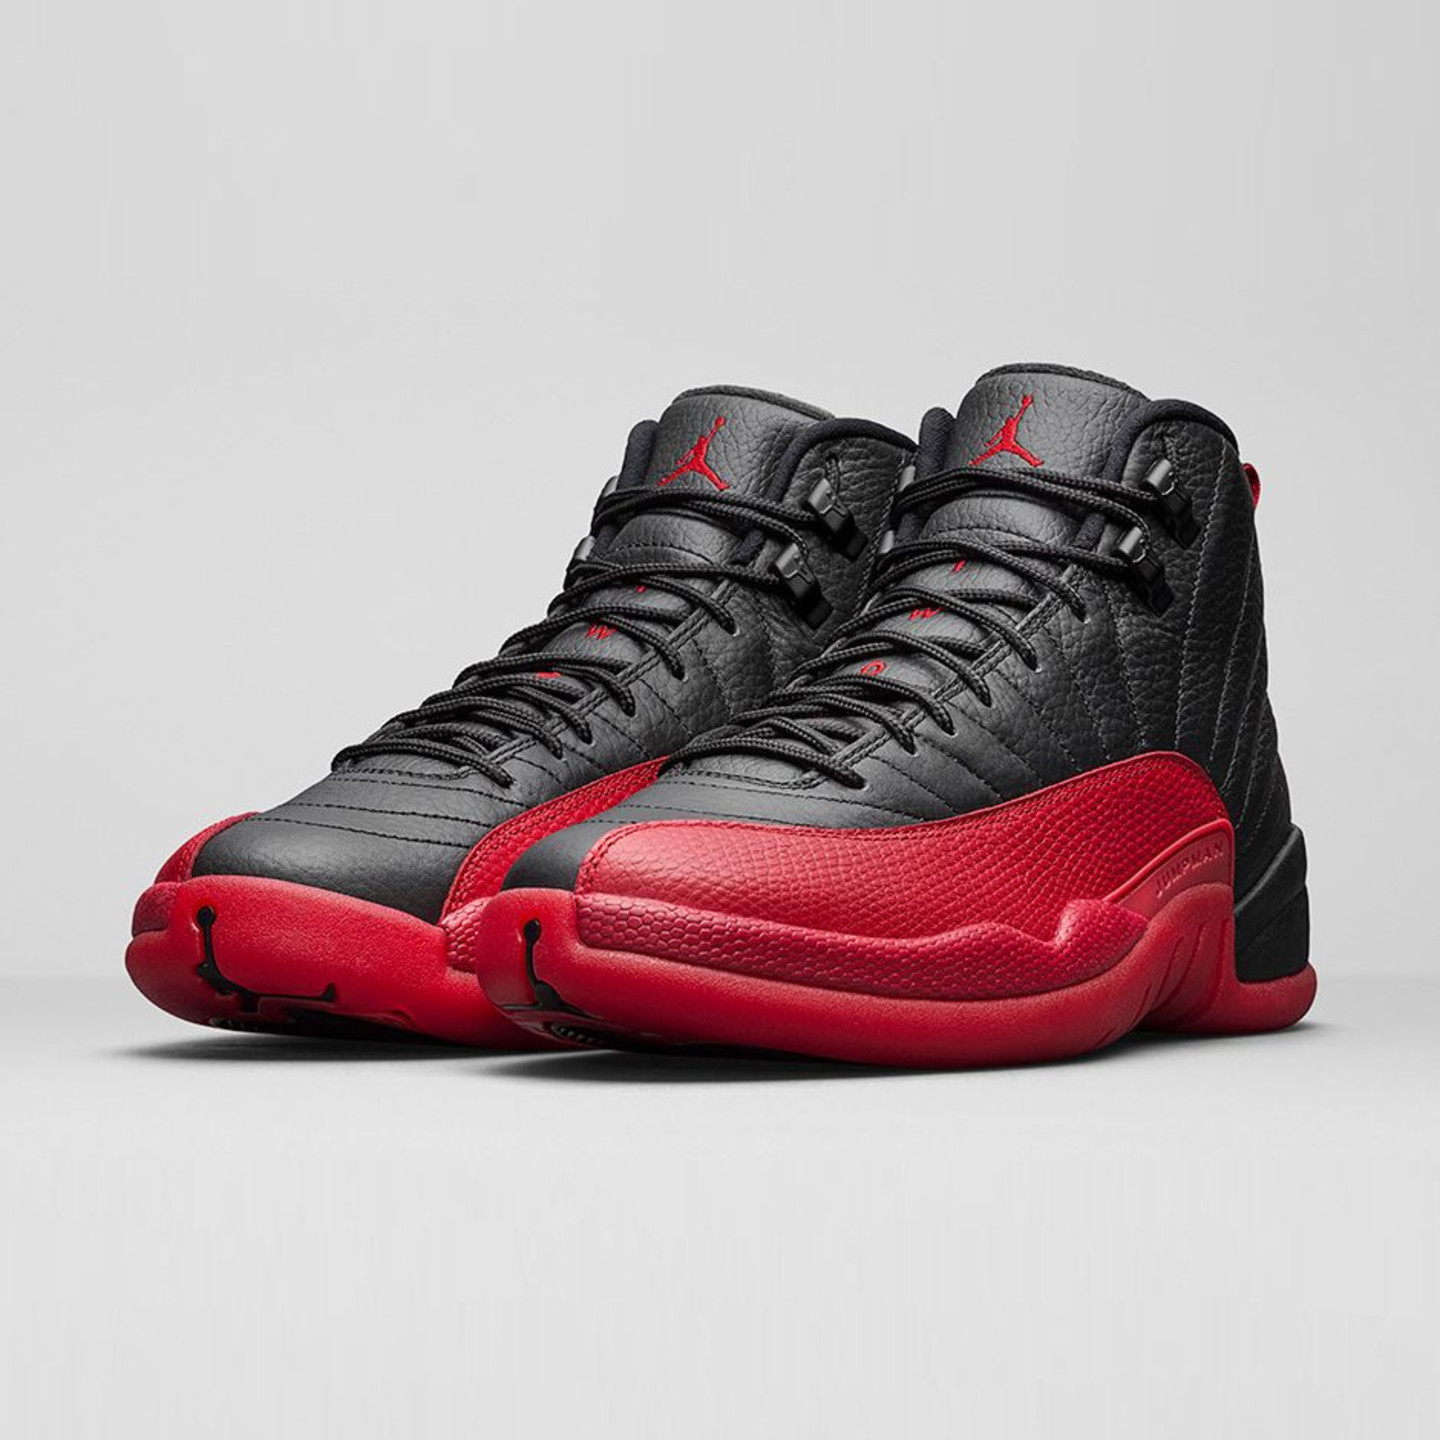 Jordan Air Jordan 12 Retro 'Flu Game' Black / Varsity Red 130690-002-47